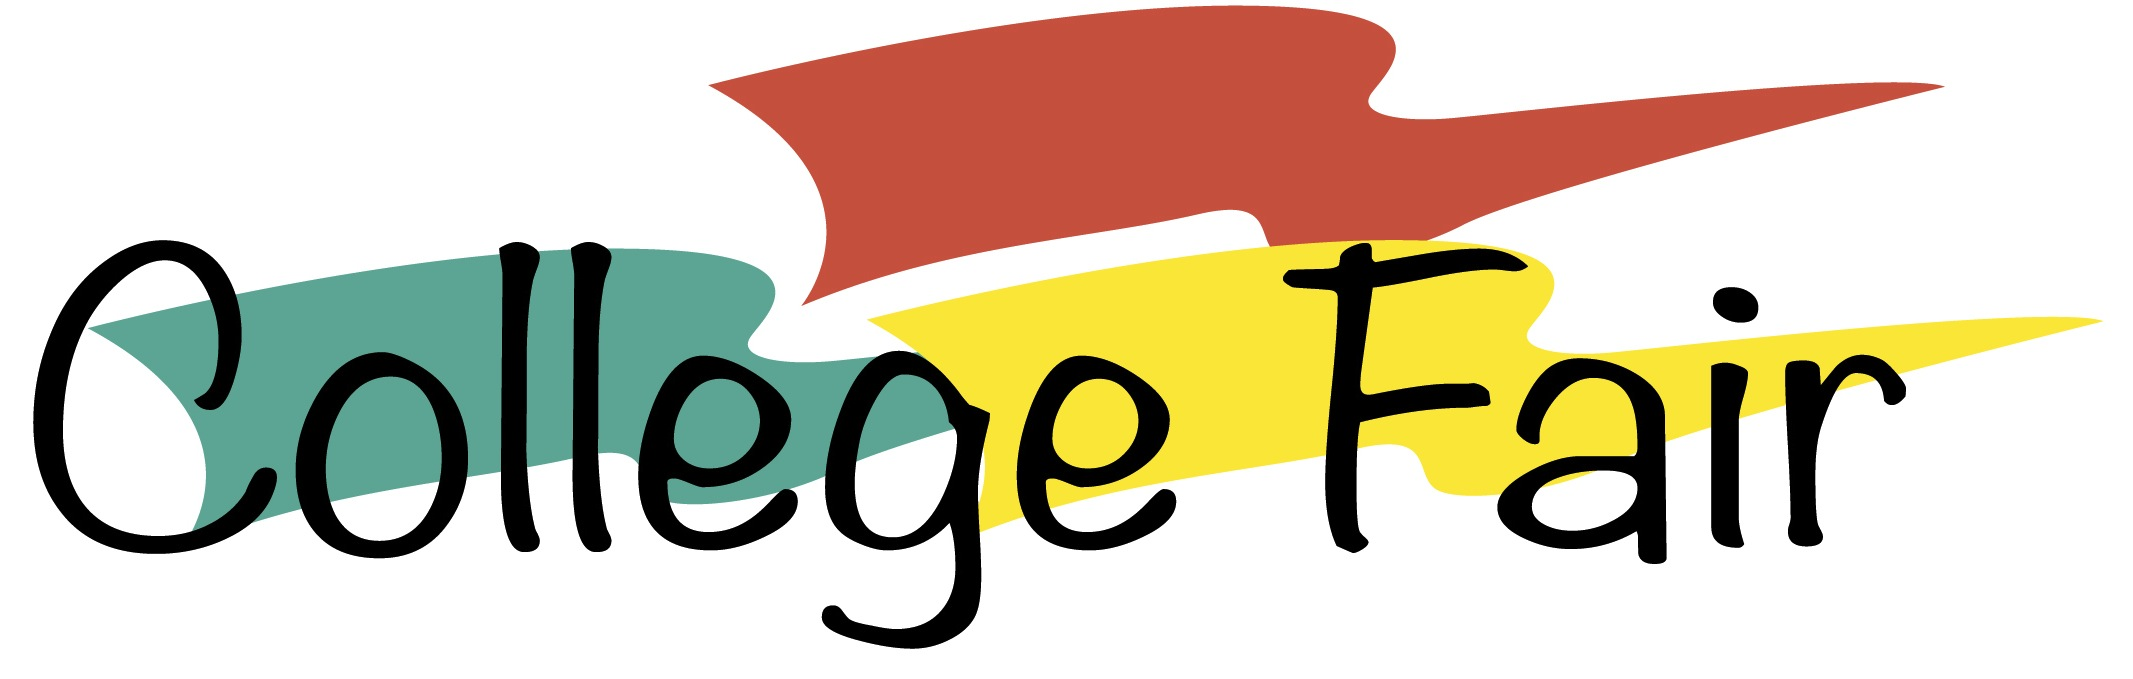 2133x679 College Clip Art Logos Free Clipart Images Image